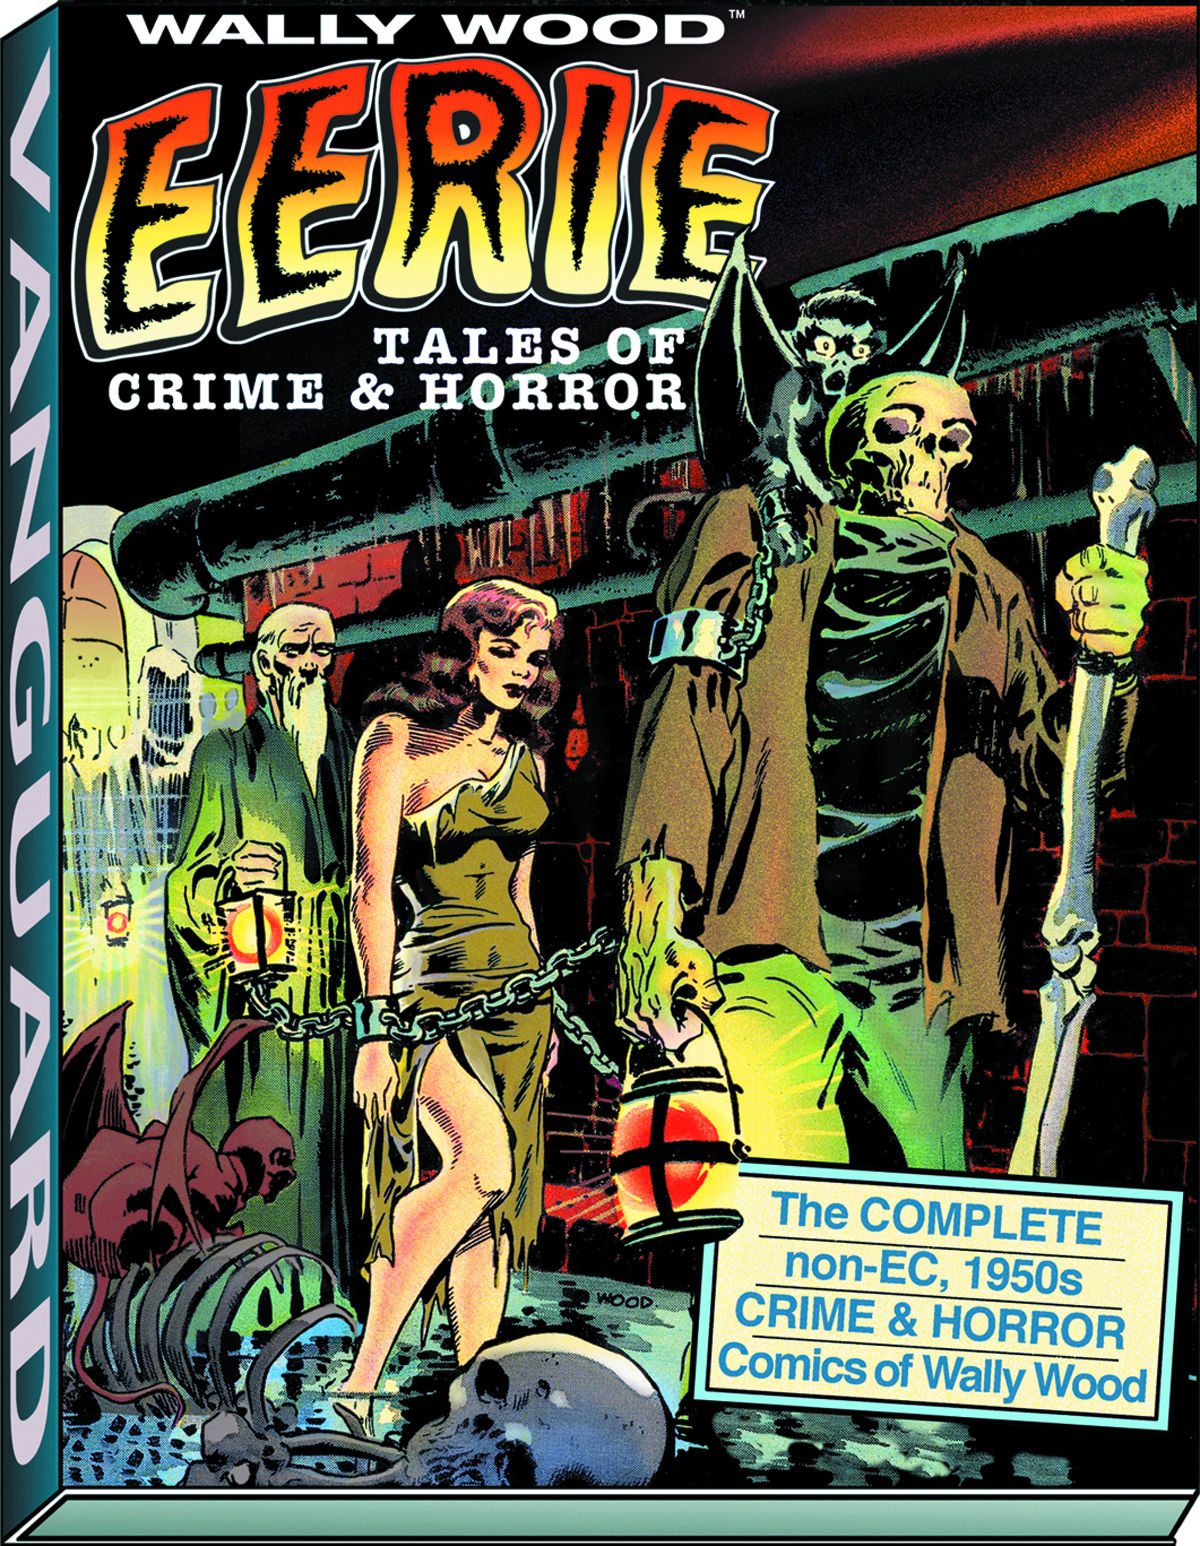 WALLY WOOD EERIE TALES OF CRIME & HORROR DLX SLIPCASED